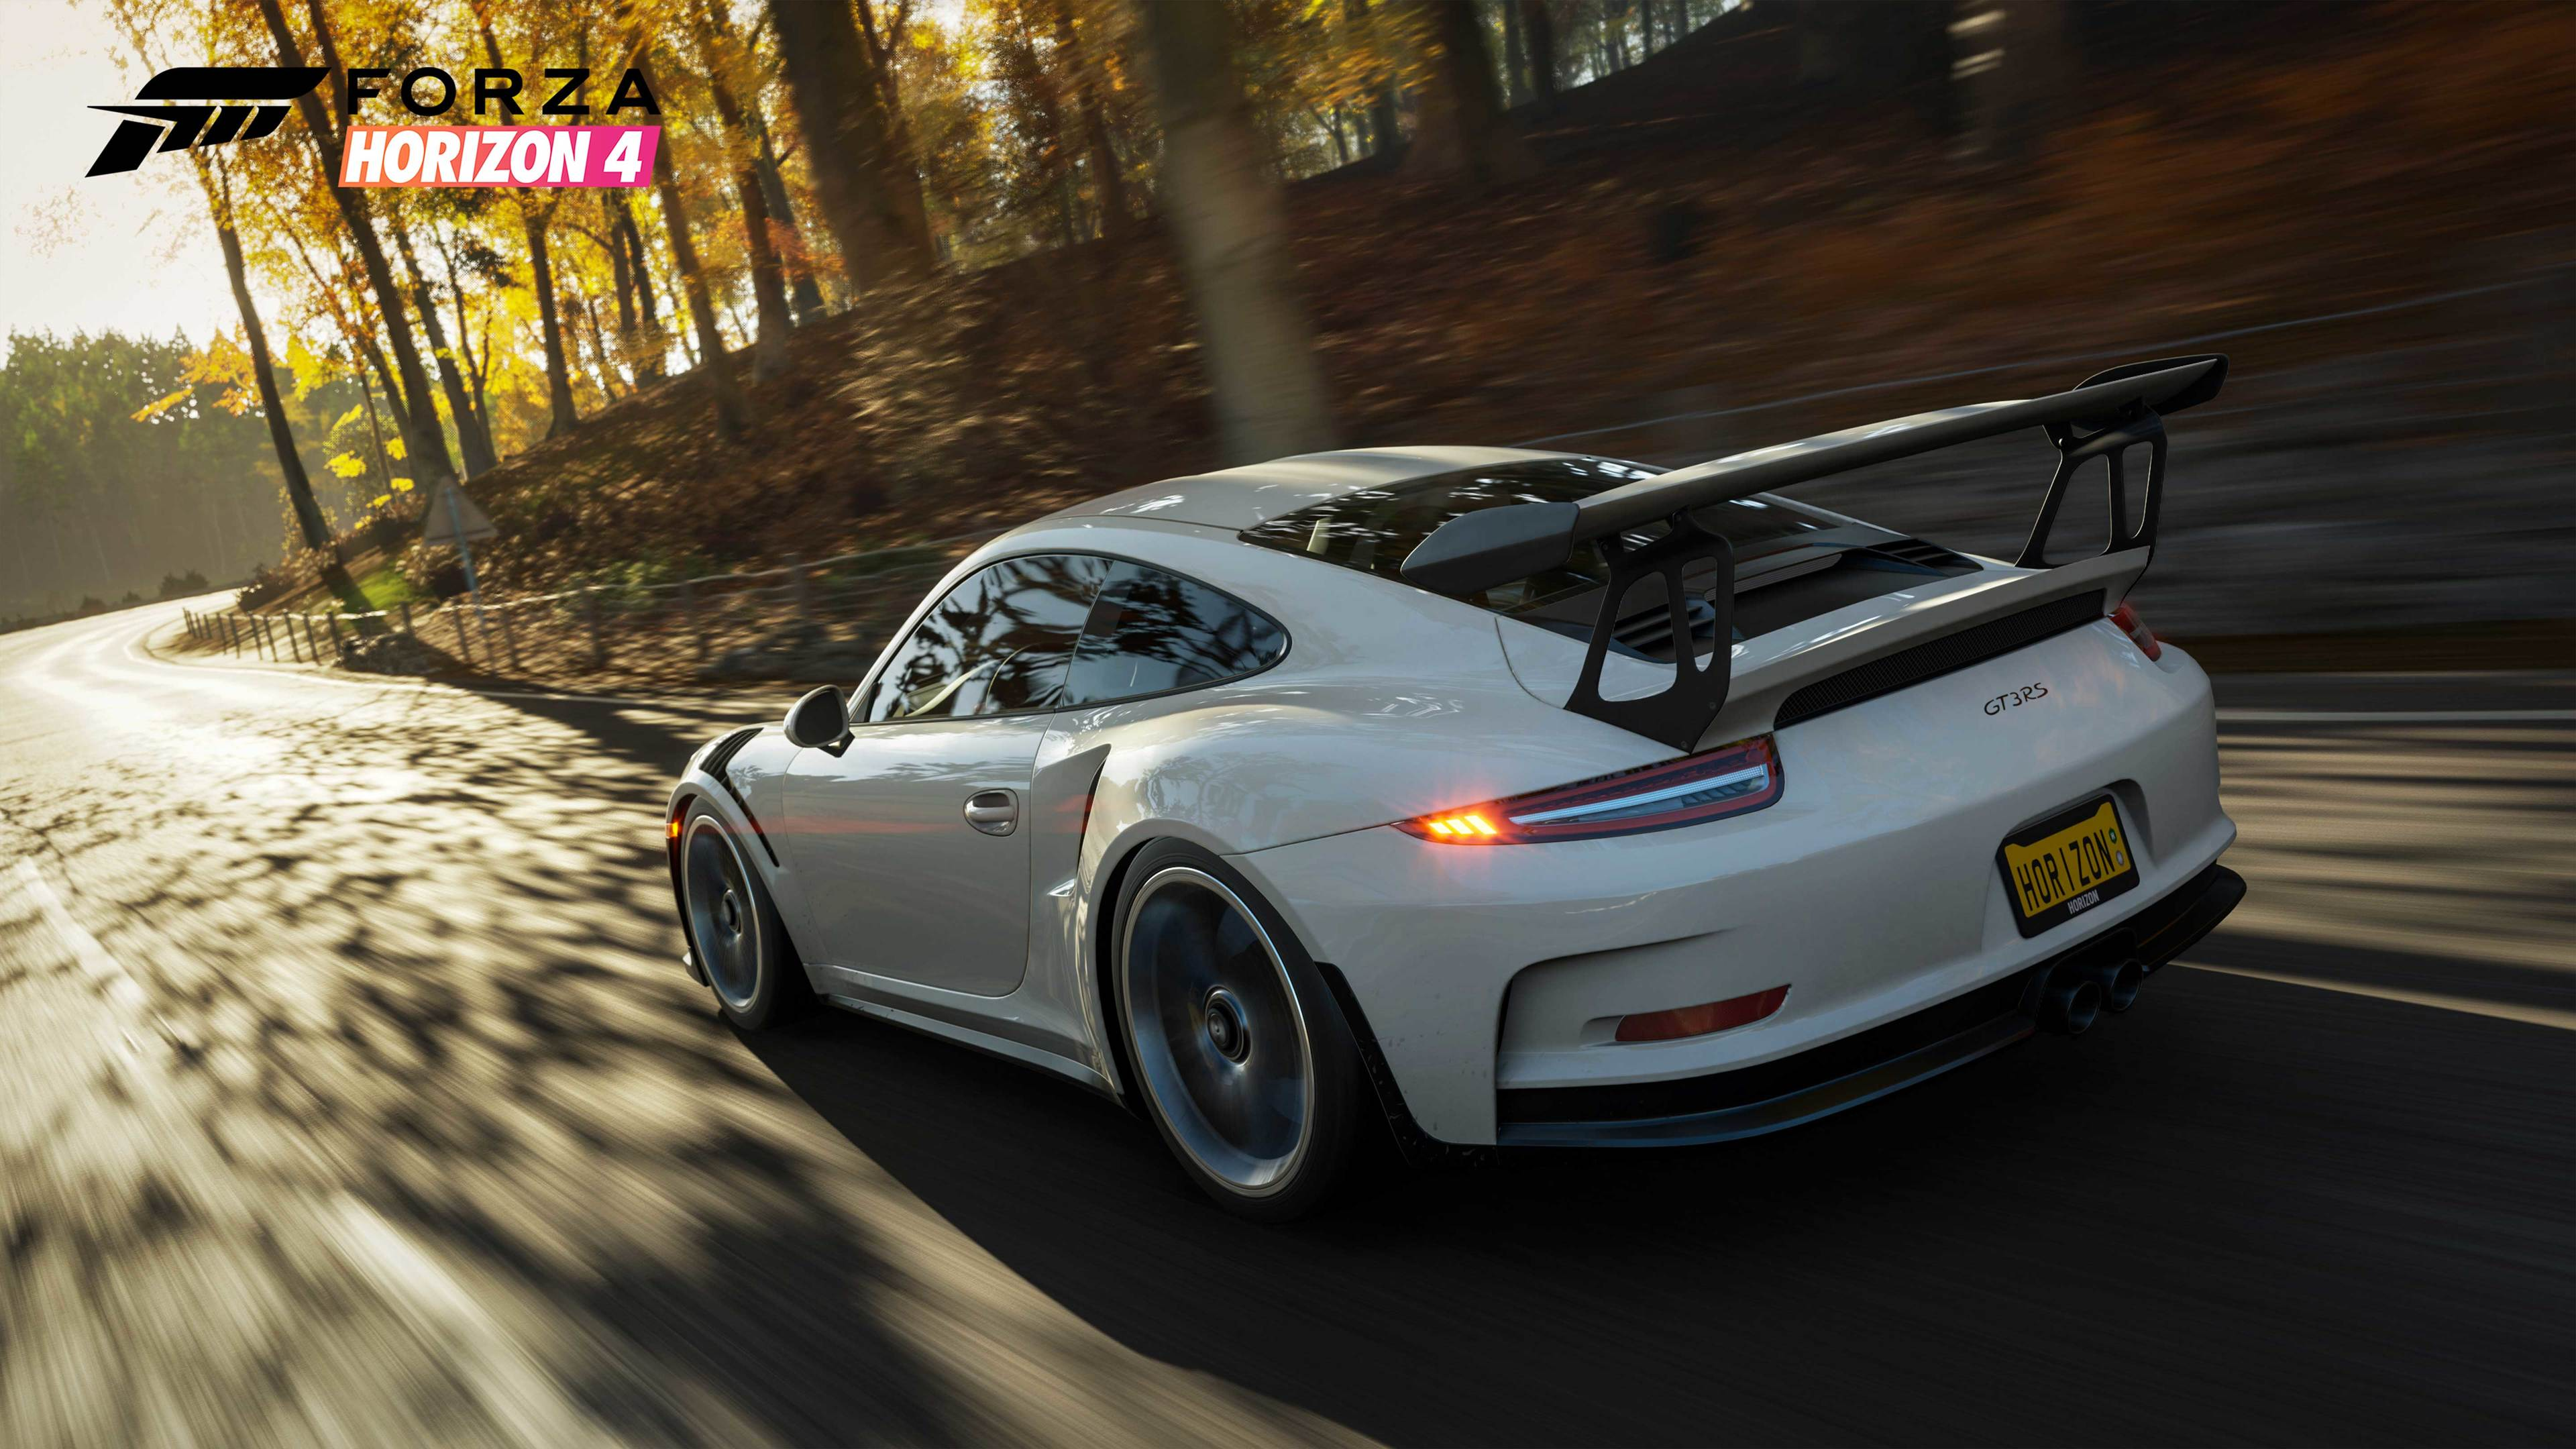 forza horizon 4 gt3 rs 5k 1537691418 - Forza Horizon 4 GT3 RS 5k - porsche wallpapers, hd-wallpapers, games wallpapers, forza wallpapers, forza horizon 4 wallpapers, cars wallpapers, 5k wallpapers, 4k-wallpapers, 2018 games wallpapers